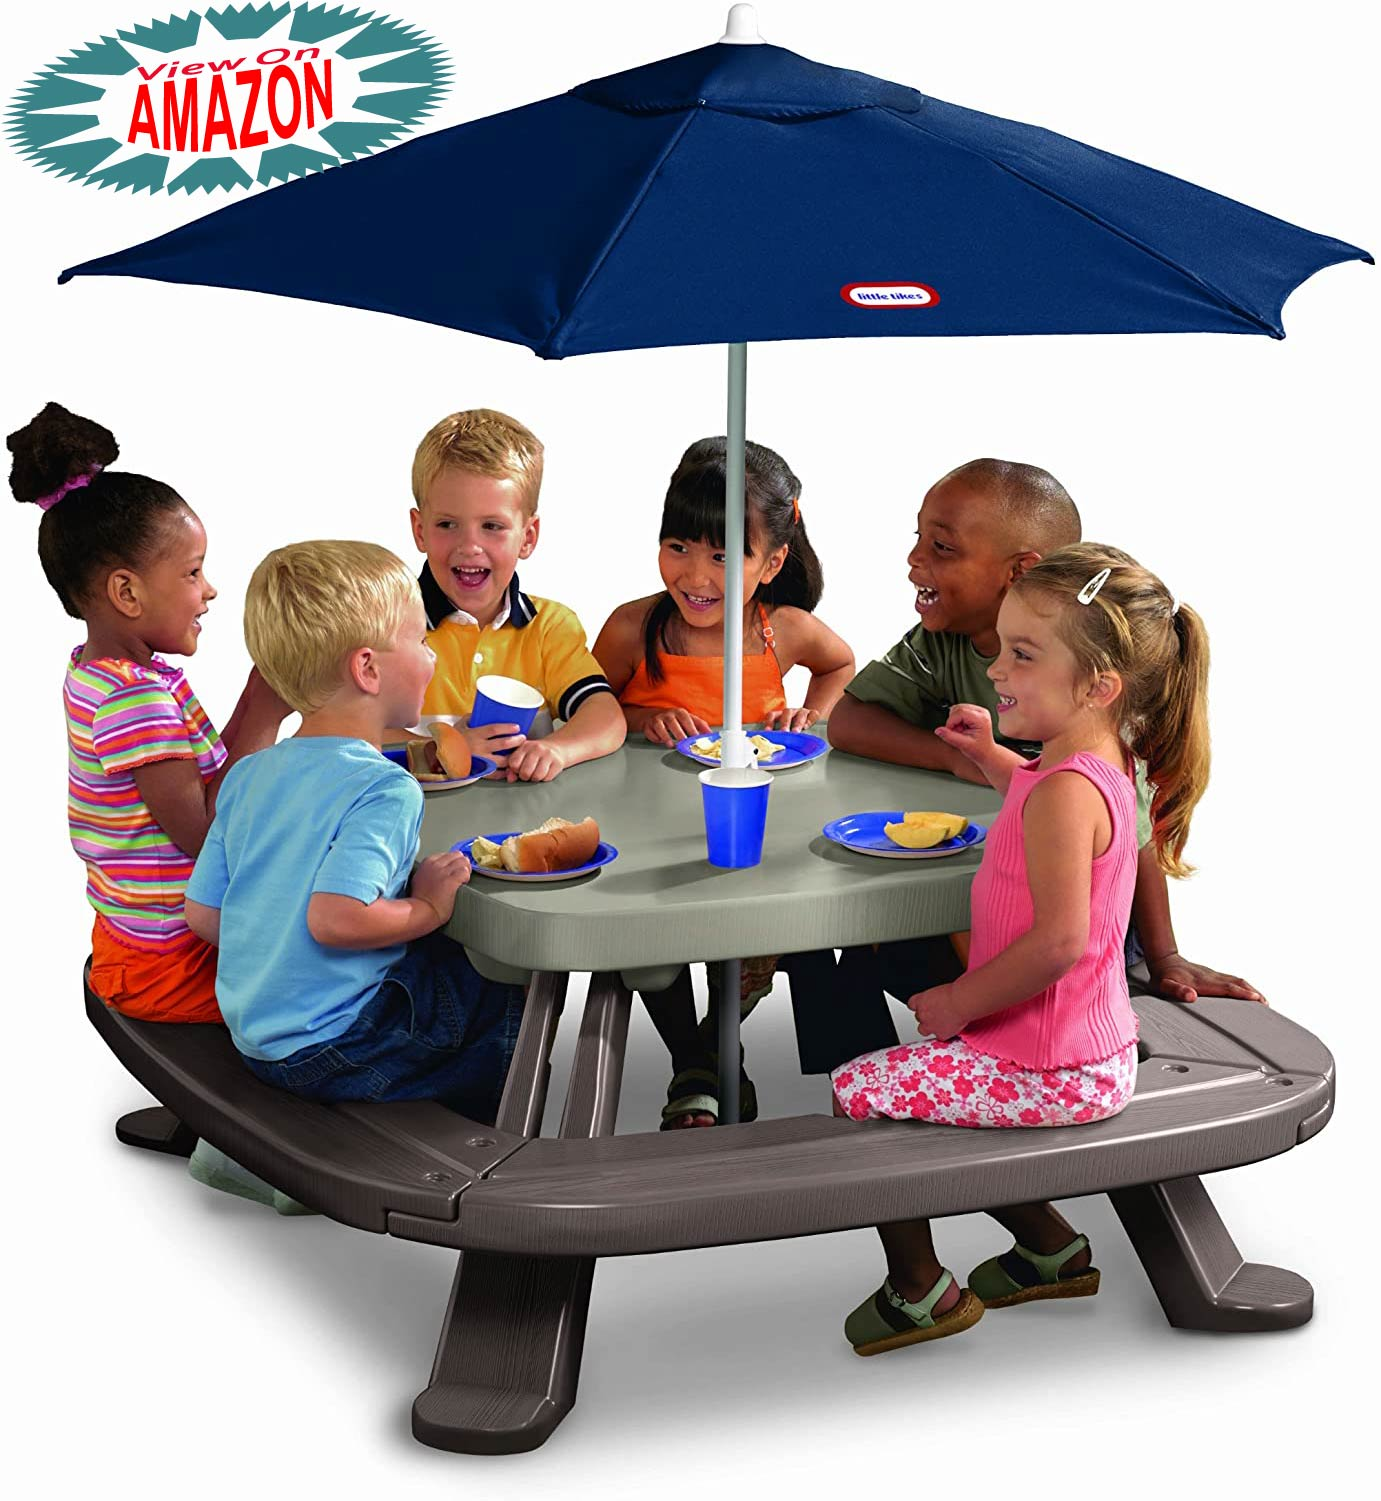 12 Best Kids Picnic Table for indoor and outdoor celebration